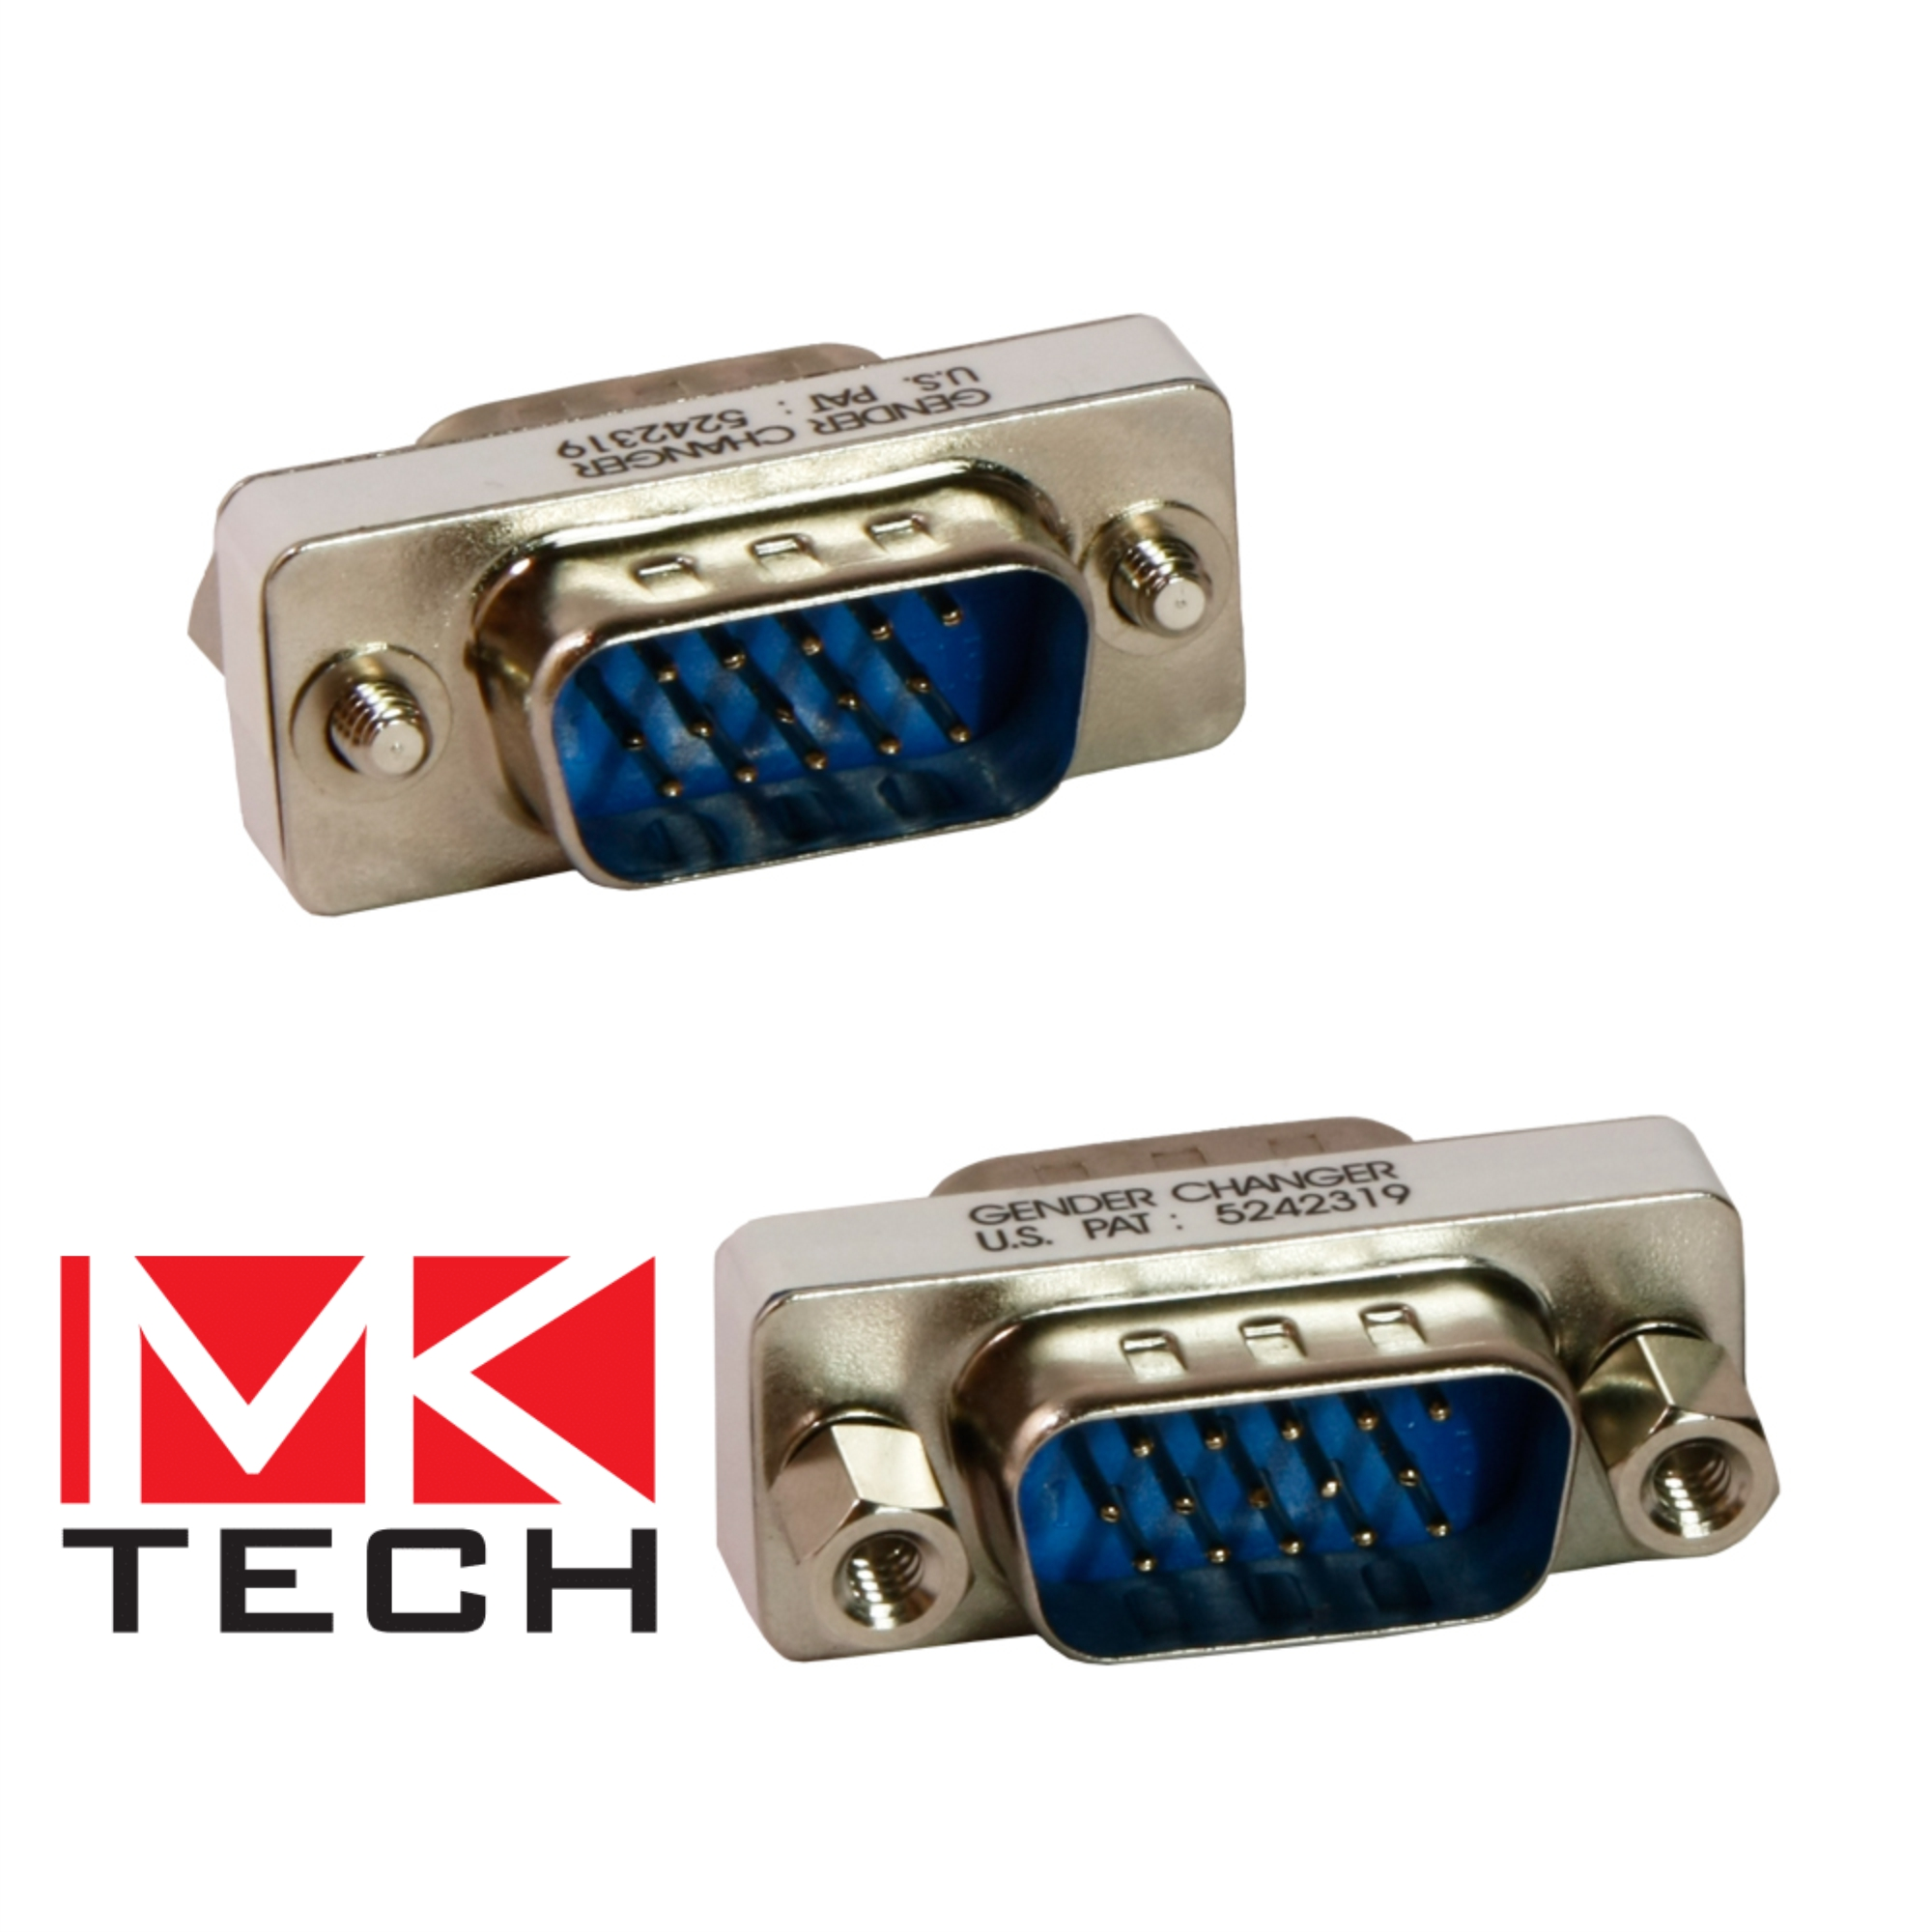 VGA HD15 Male to VGA HD15 Male MKTECH